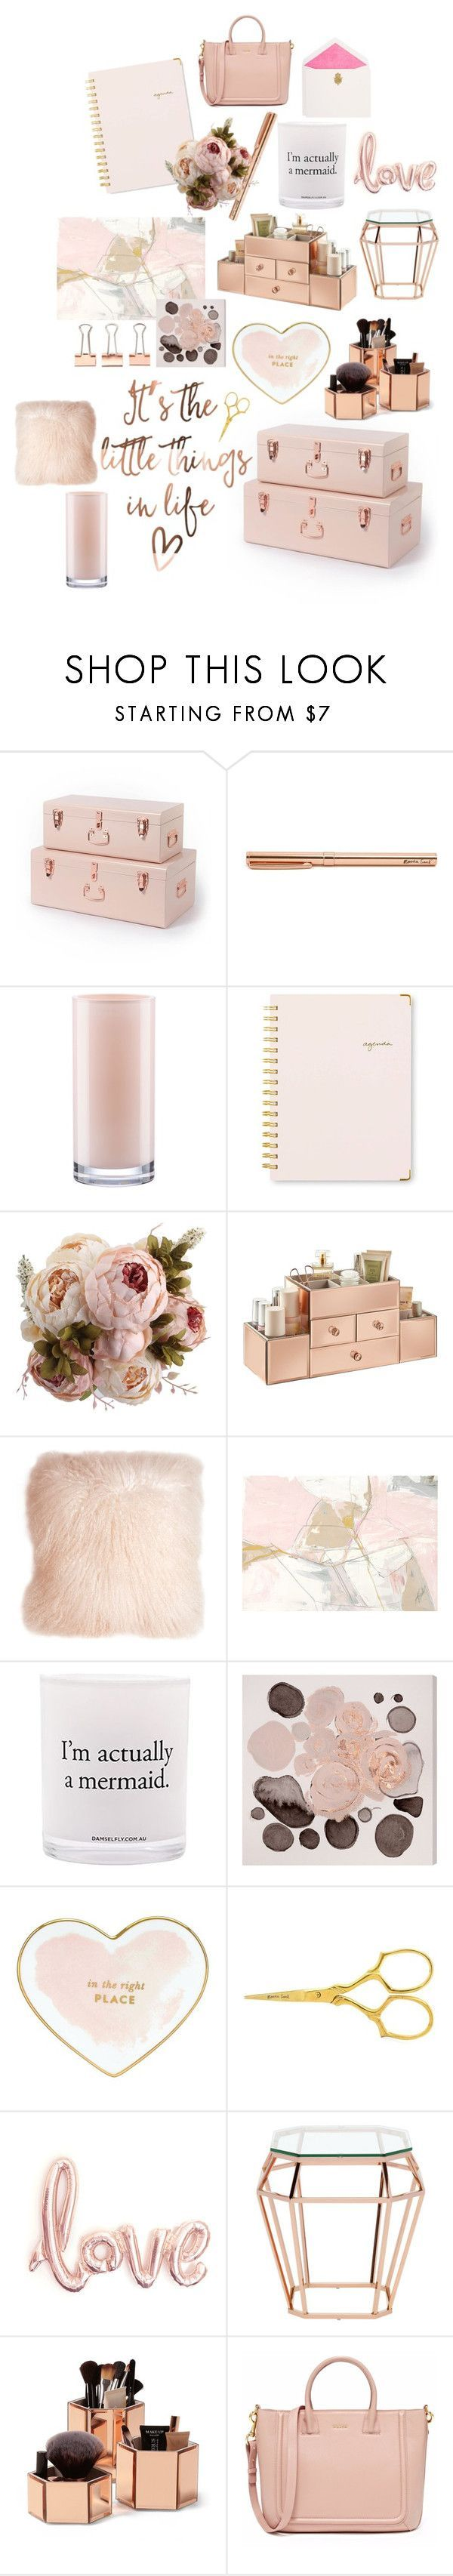 """Rose Gold Office"" by a-little-galaxy ❤️ liked on Polyvore featuring interior, interiors, interior design, home, home decor, interior decorating, Kate Spade, Sugar Paper, Pillow Decor and Damselfly Candles"